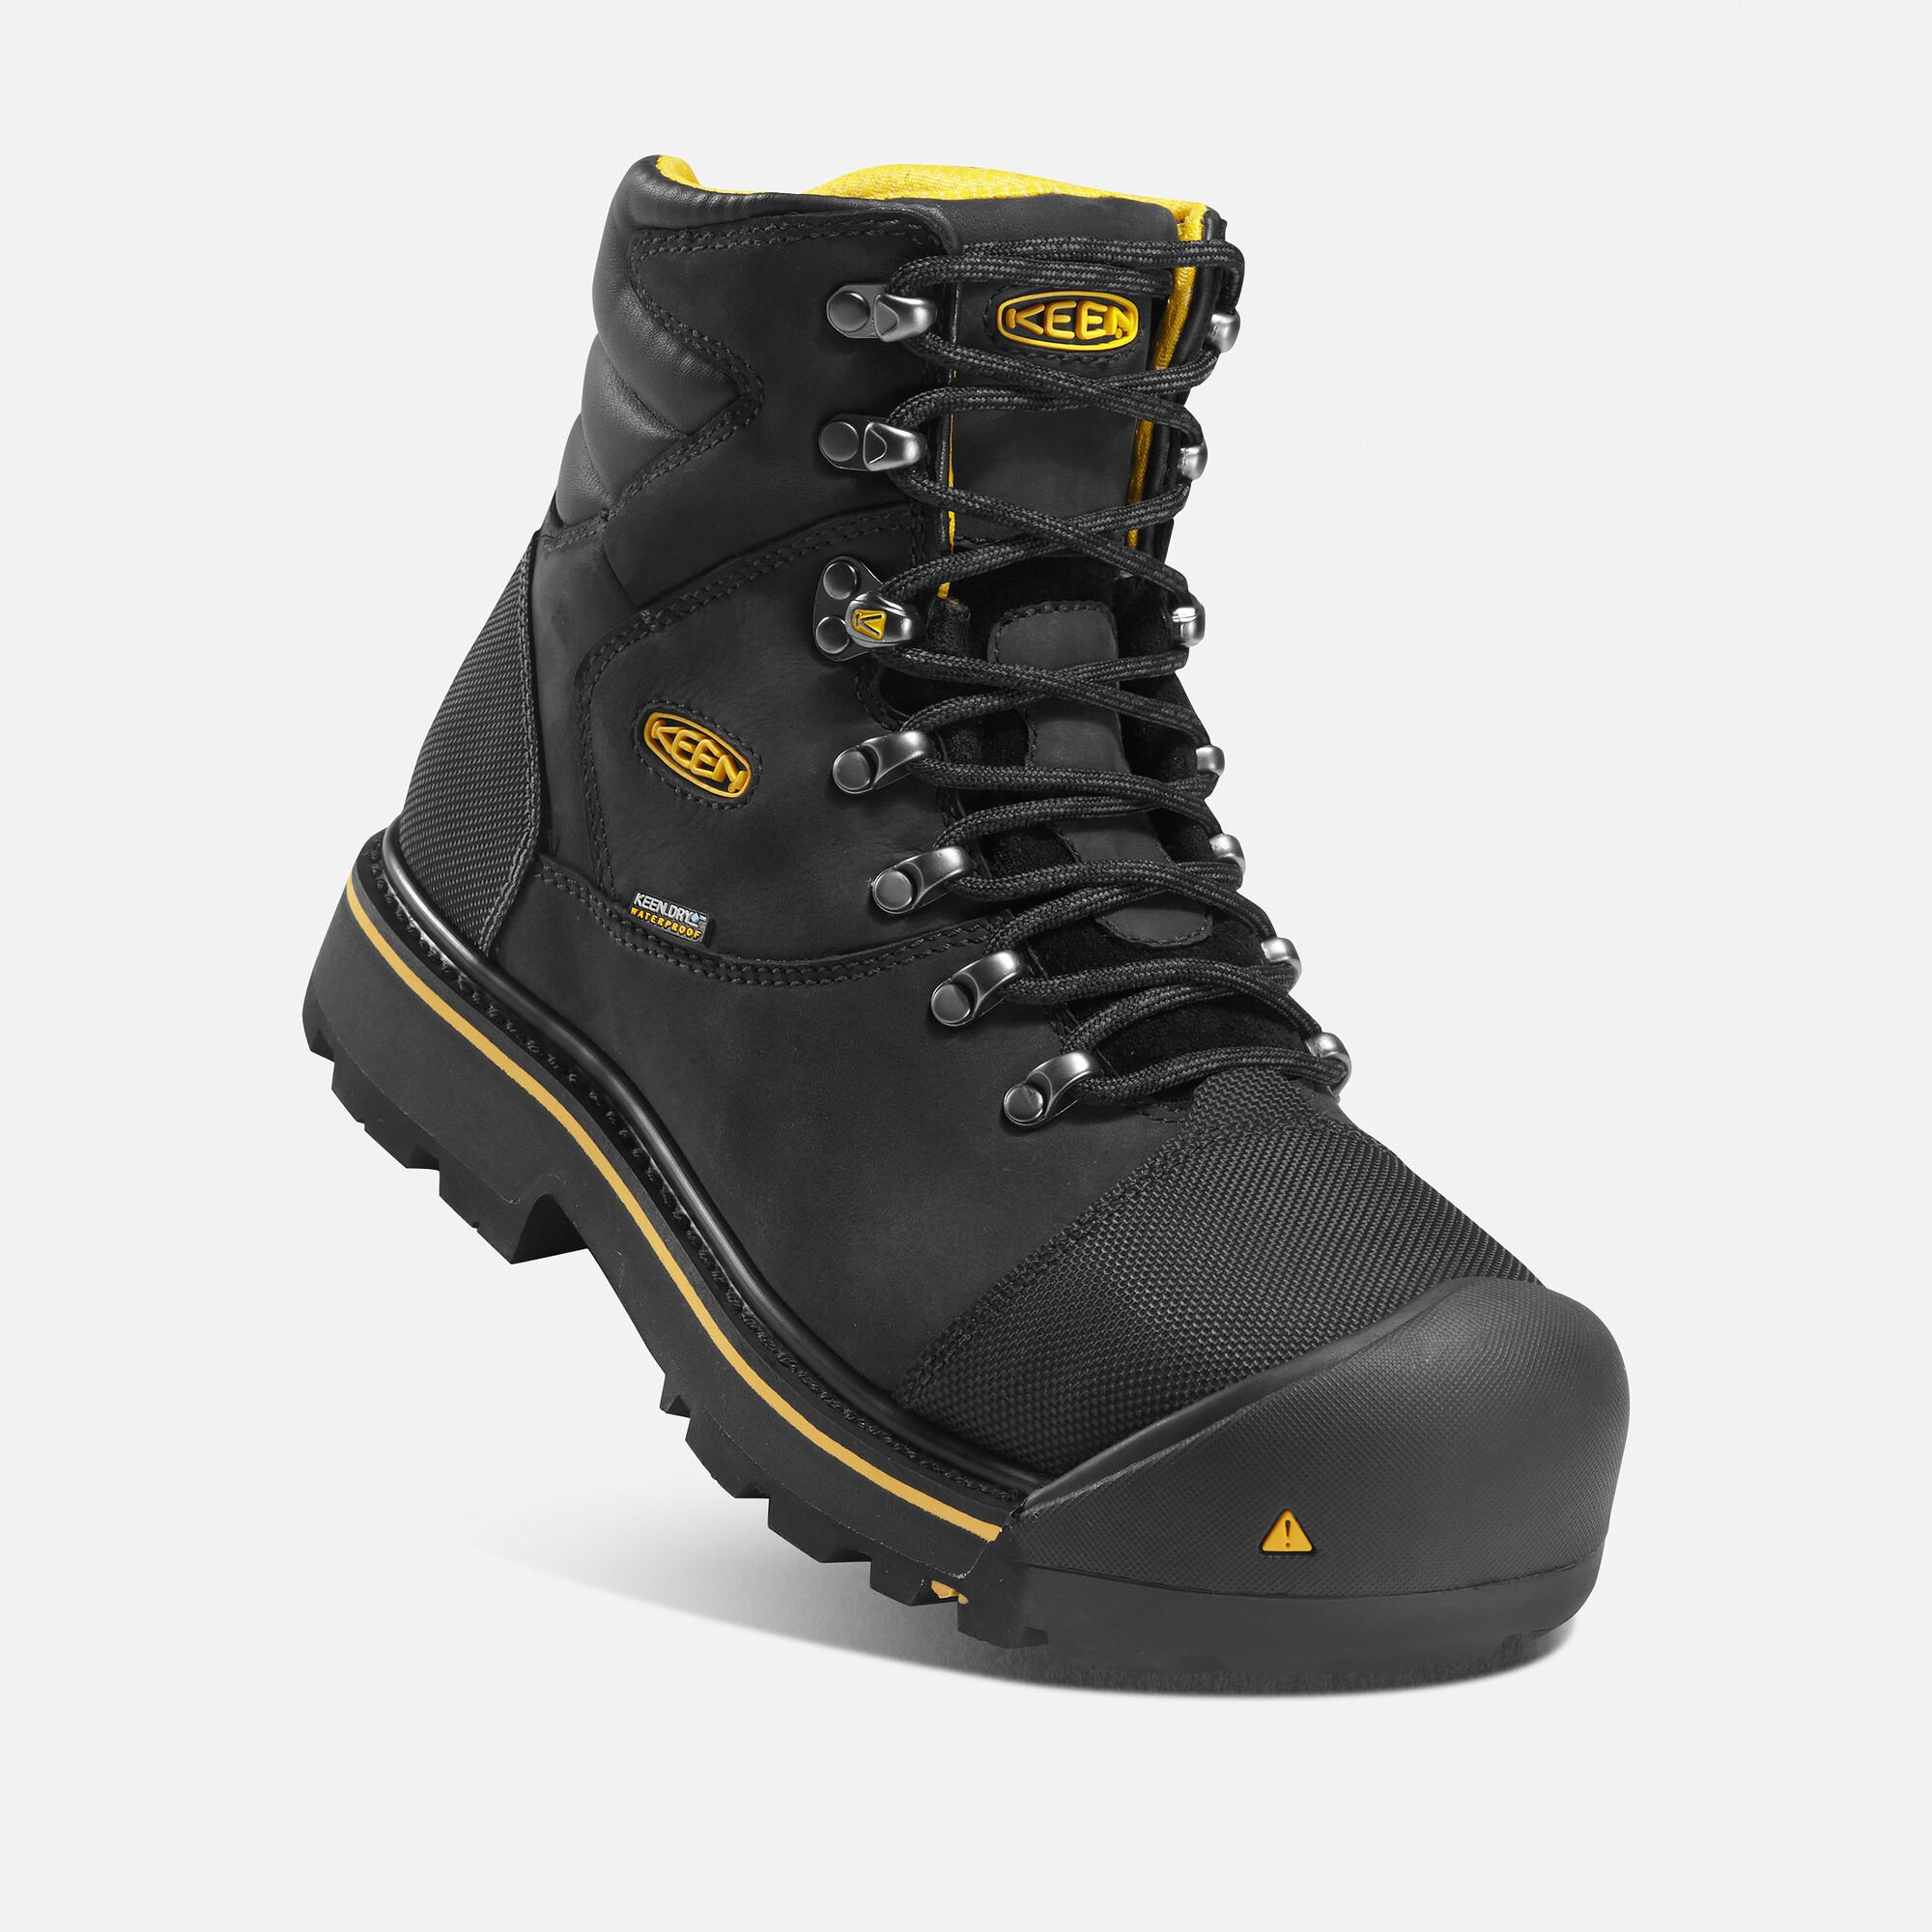 boot in boots s men comfortable composite most bison keen footwear toe steel pdp comforter pittsburgh small m p